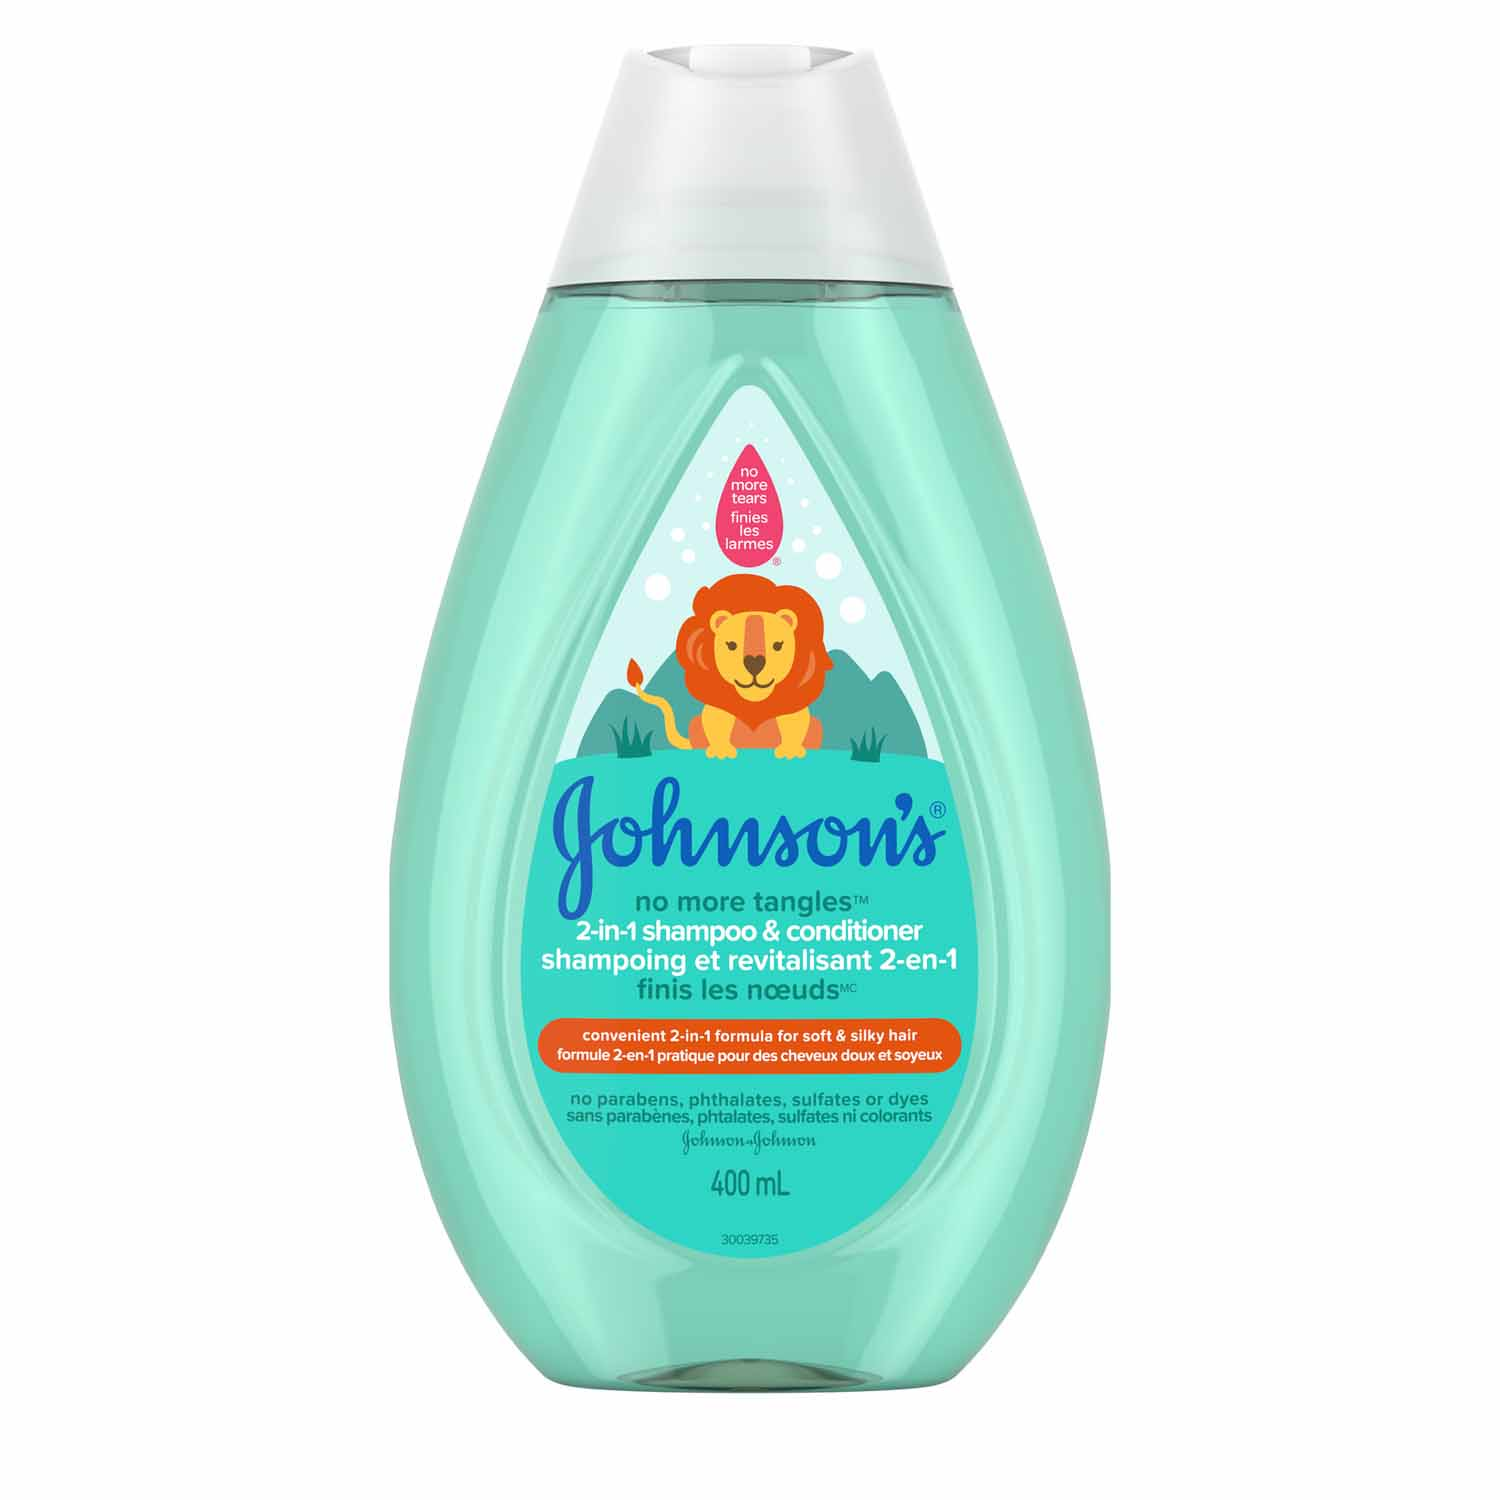 JOHNSON'S® NO MORE TANGLES® shampoo conditioner front hero